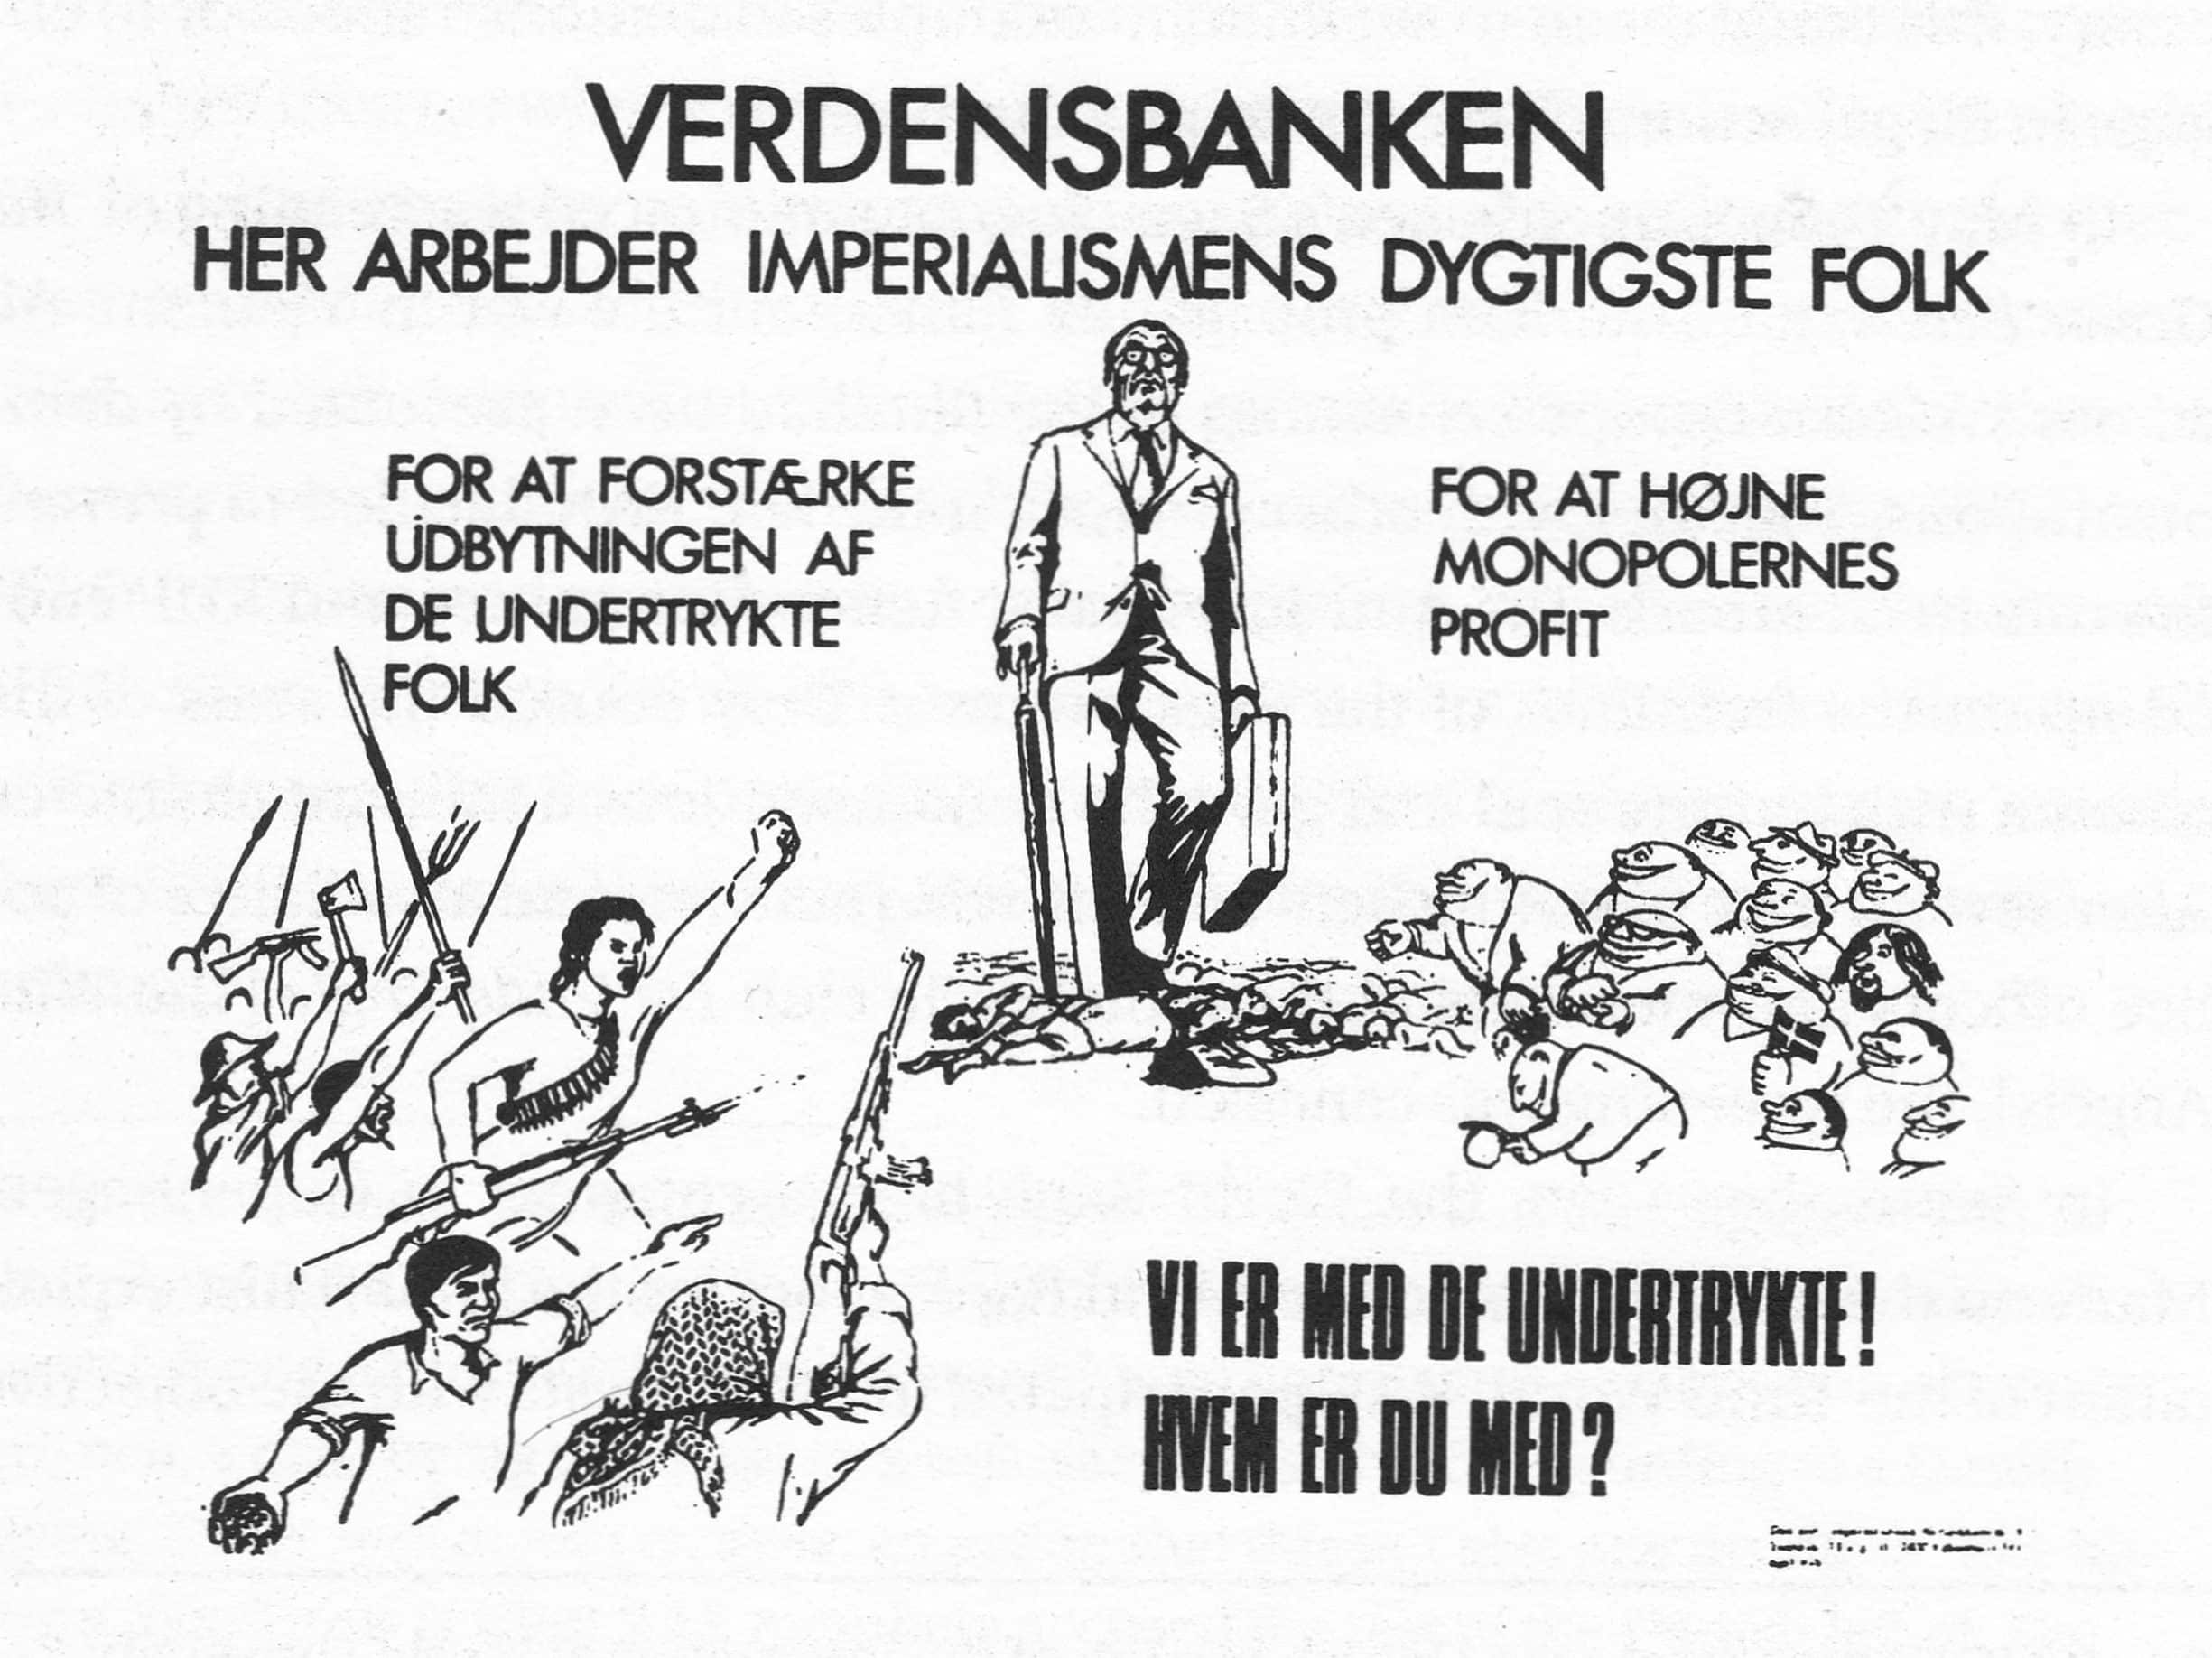 KUF/Anti-imperialistic Action Commitee poster in protest against the World Bank congress in Copenhagen 1970: